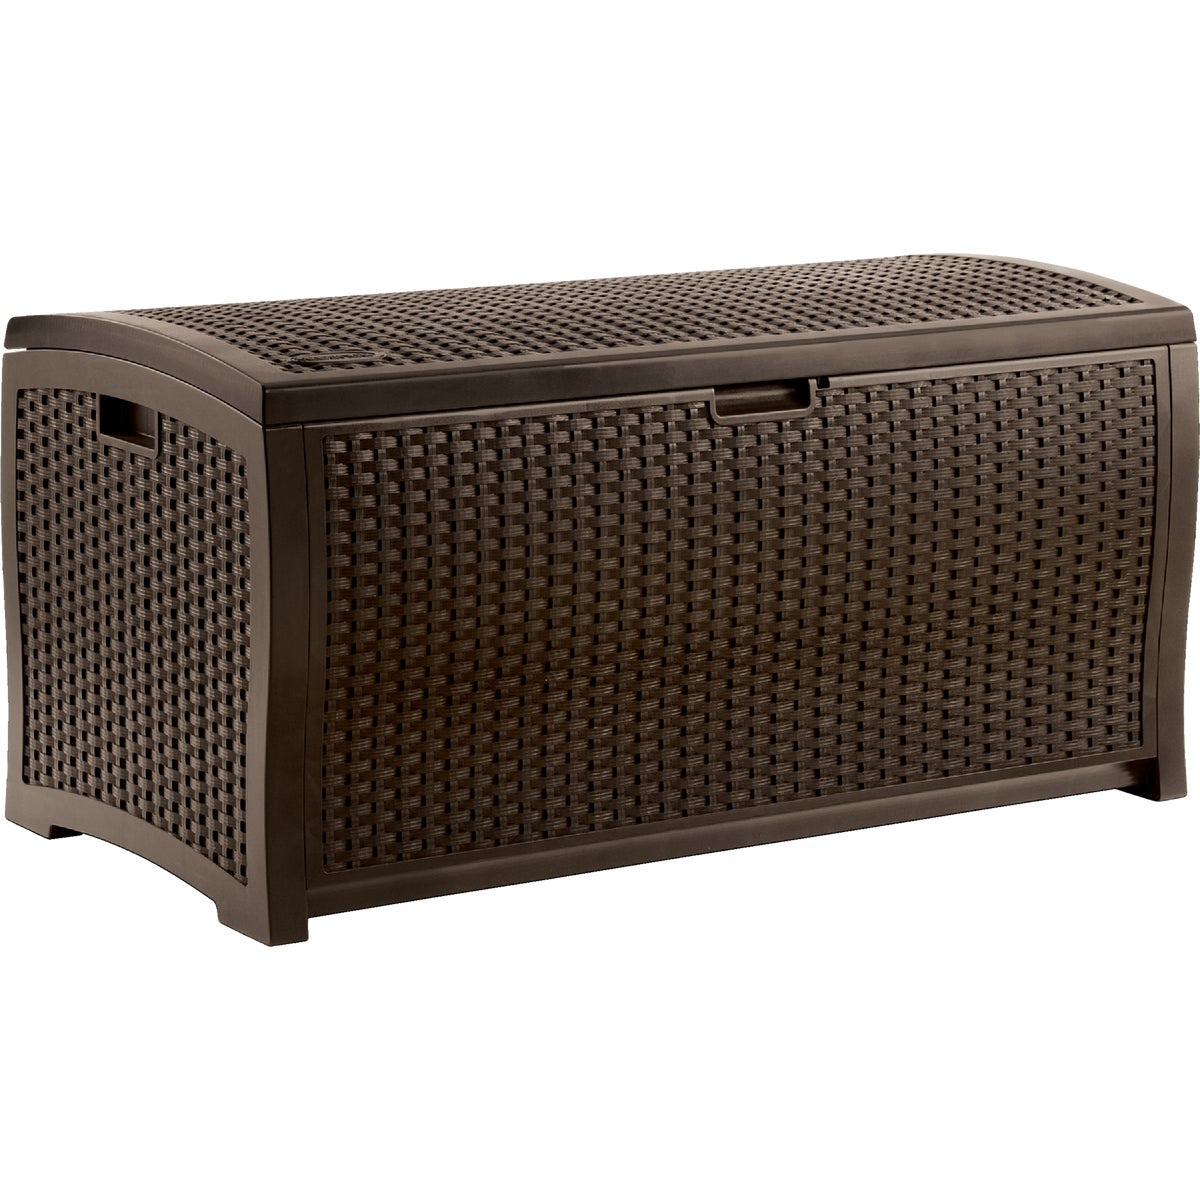 RESIN WICKER DECK BOX - DBW9200 by Suncast Corporation